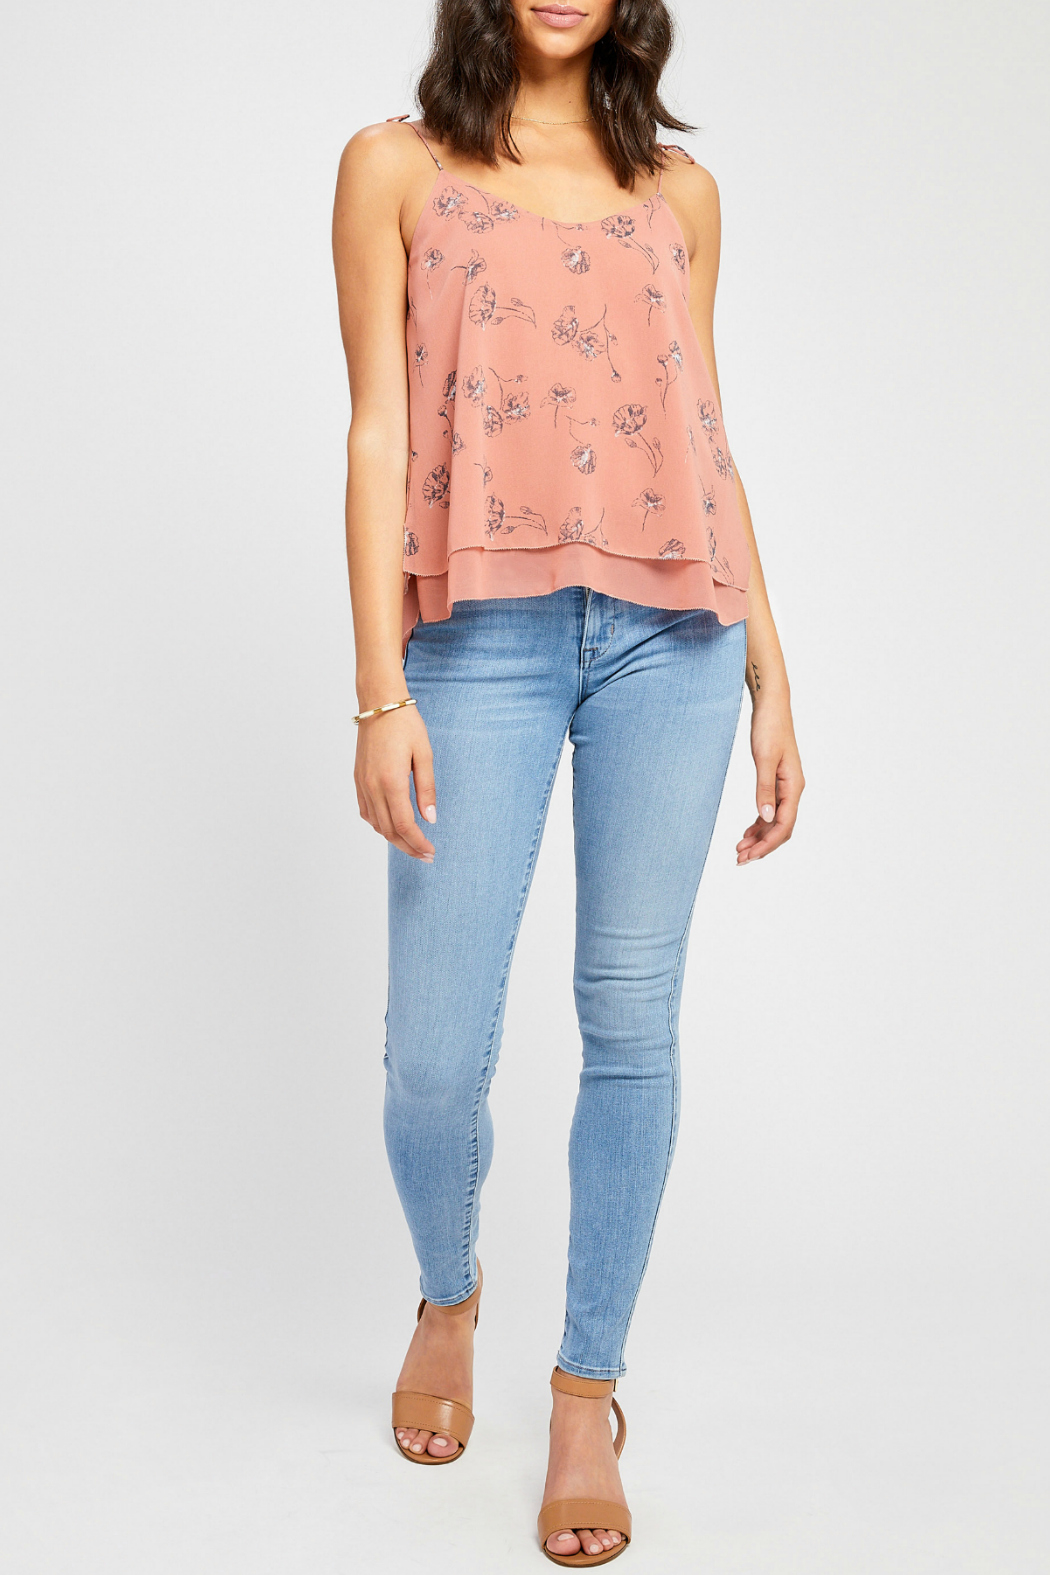 Gentle Fawn Evelyn lined tank w shoulder ties - Main Image